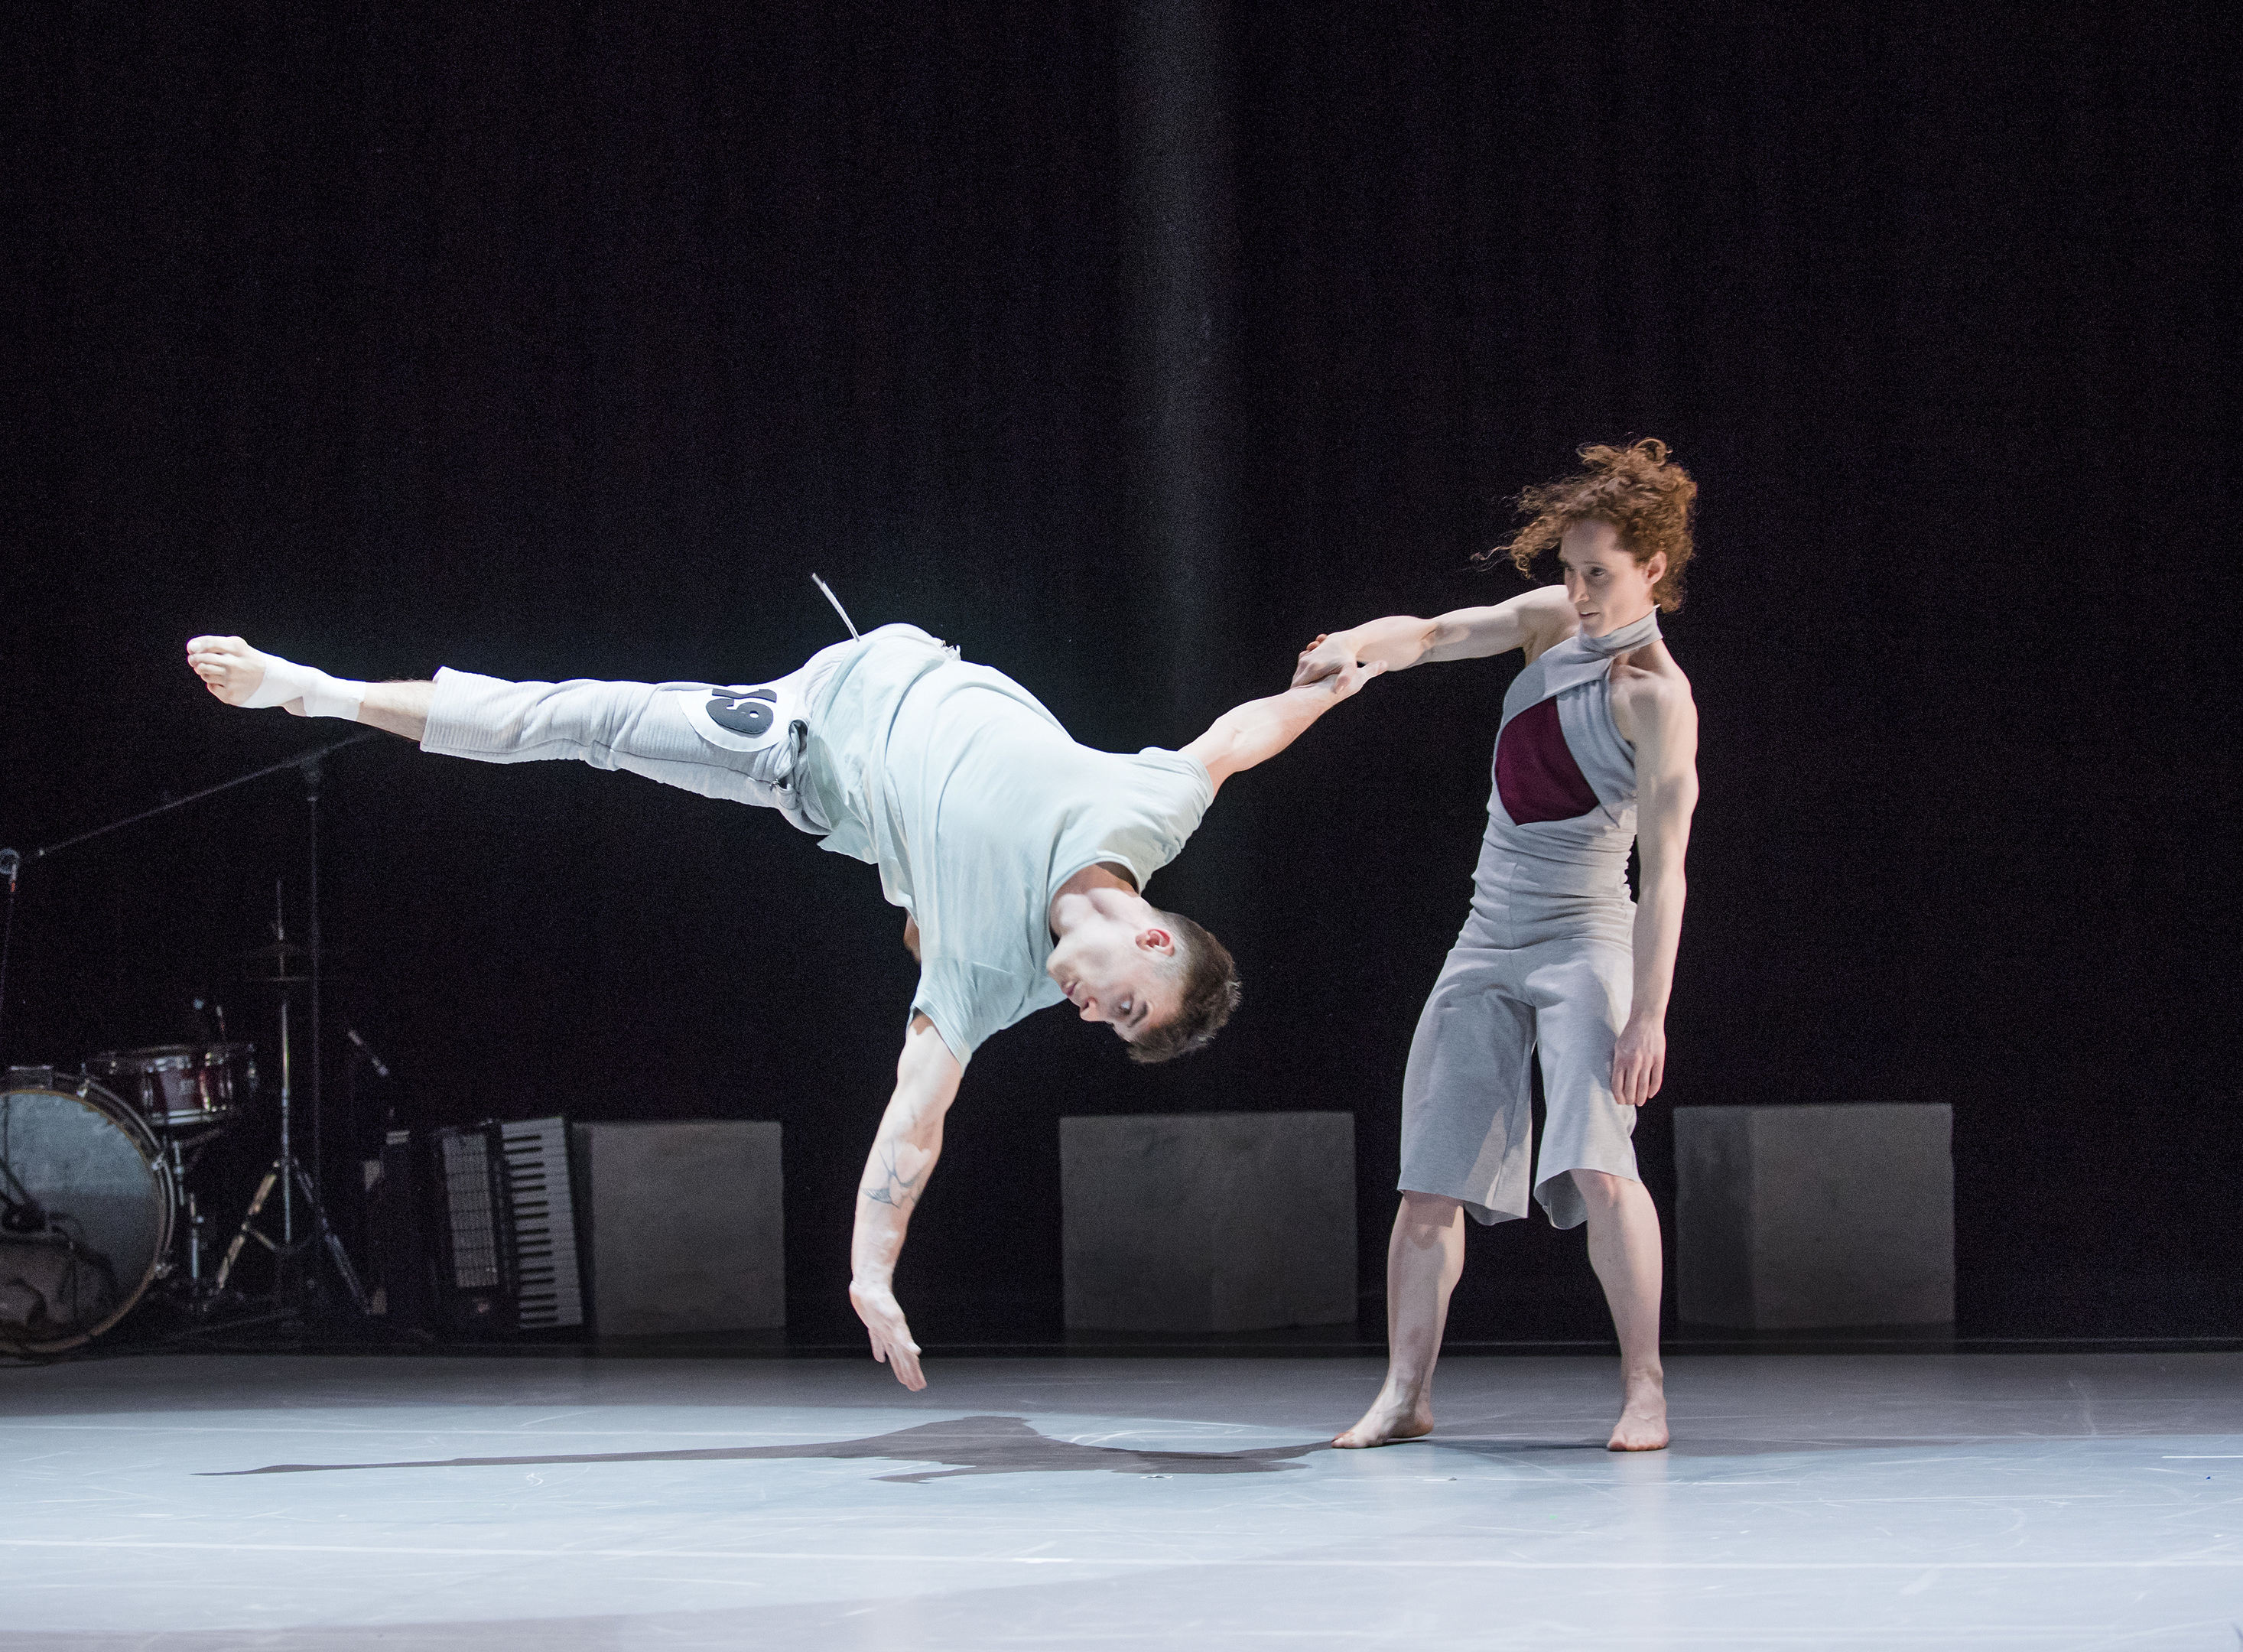 Beren D'Amico and Nikki Rummer in Kin by Barely Methodical Troupe  (Tristram Kenton)